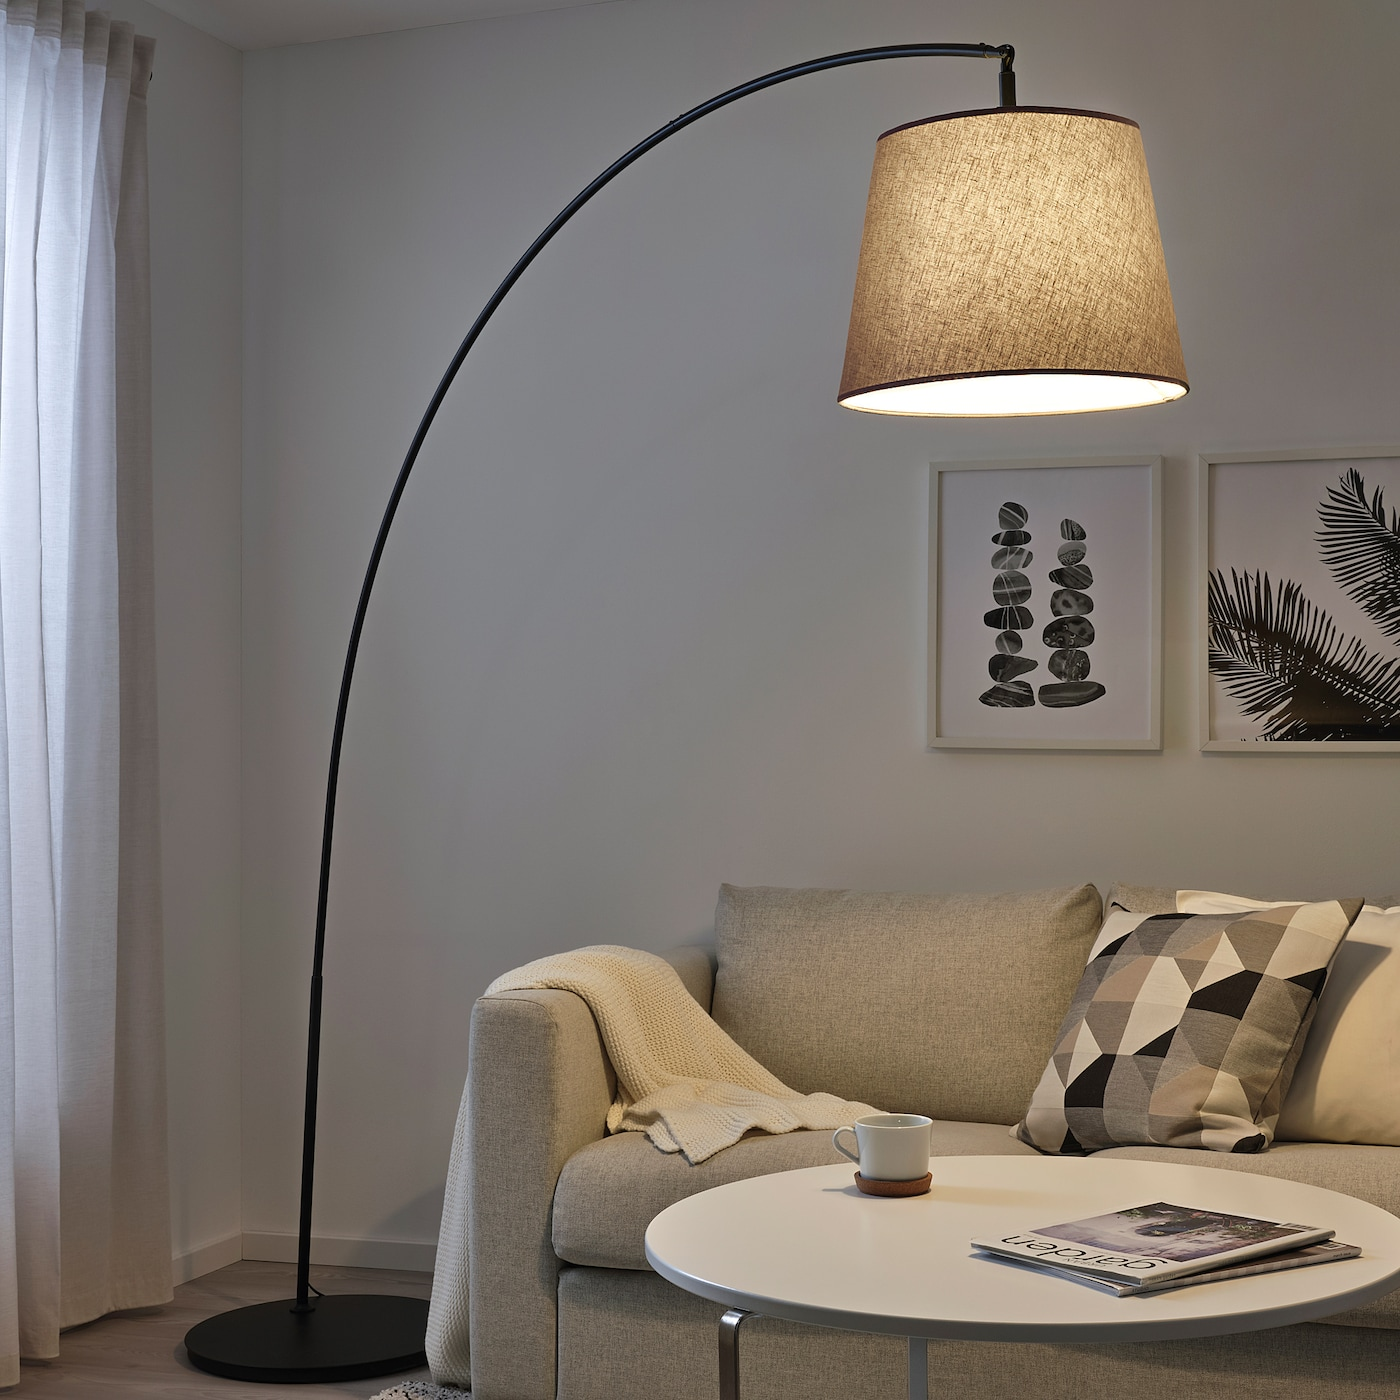 Picture of: Skottorp Skaftet Floor Lamp Base W Light Blb Arched Light Gray Ikea